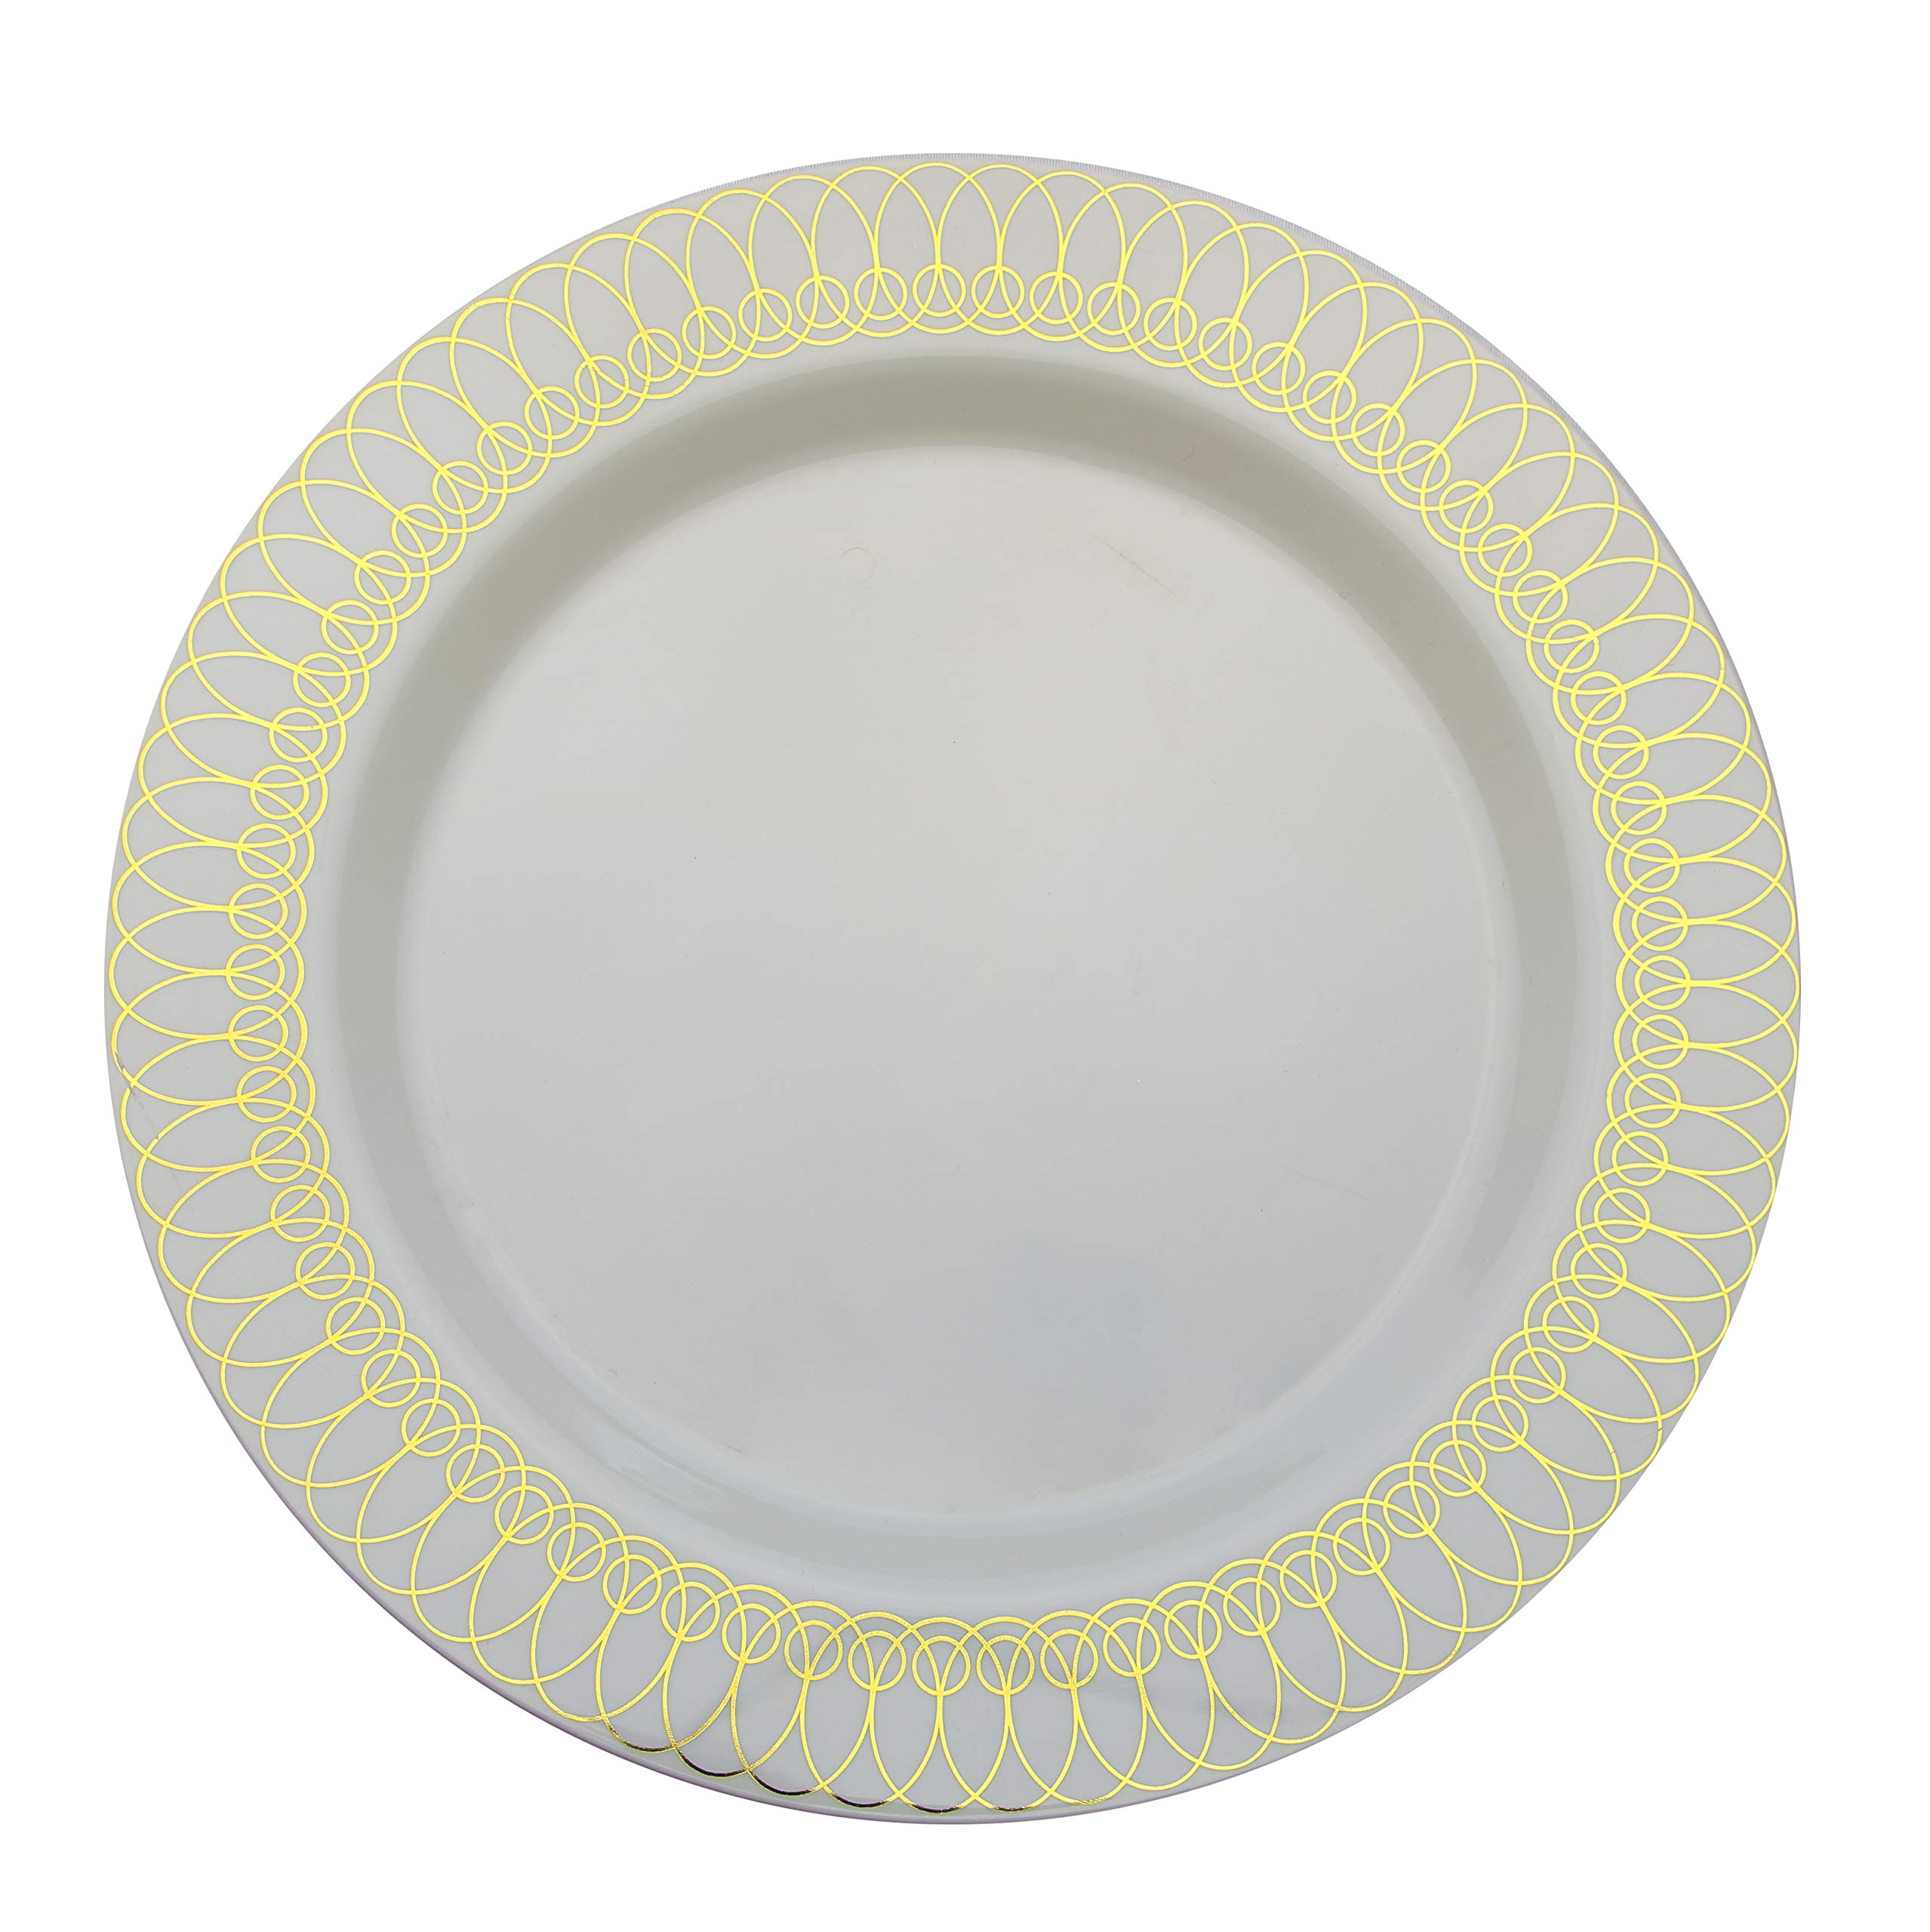 9in. Gold Ovals Design Premium Plastic Wedding Plates (40 Pack) China-Like